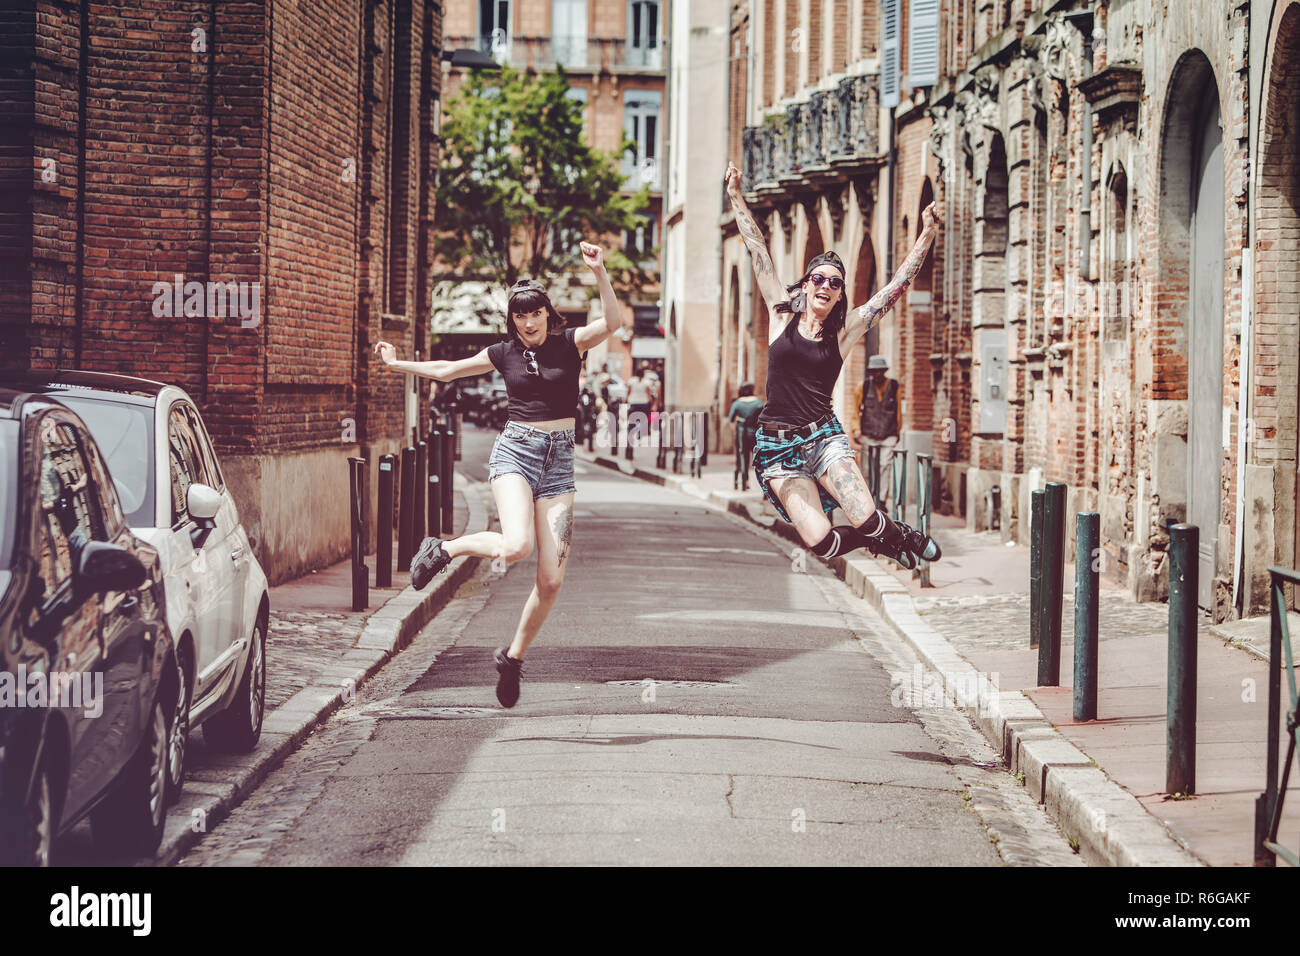 Jumping of two young women on a street in the city center - Stock Image